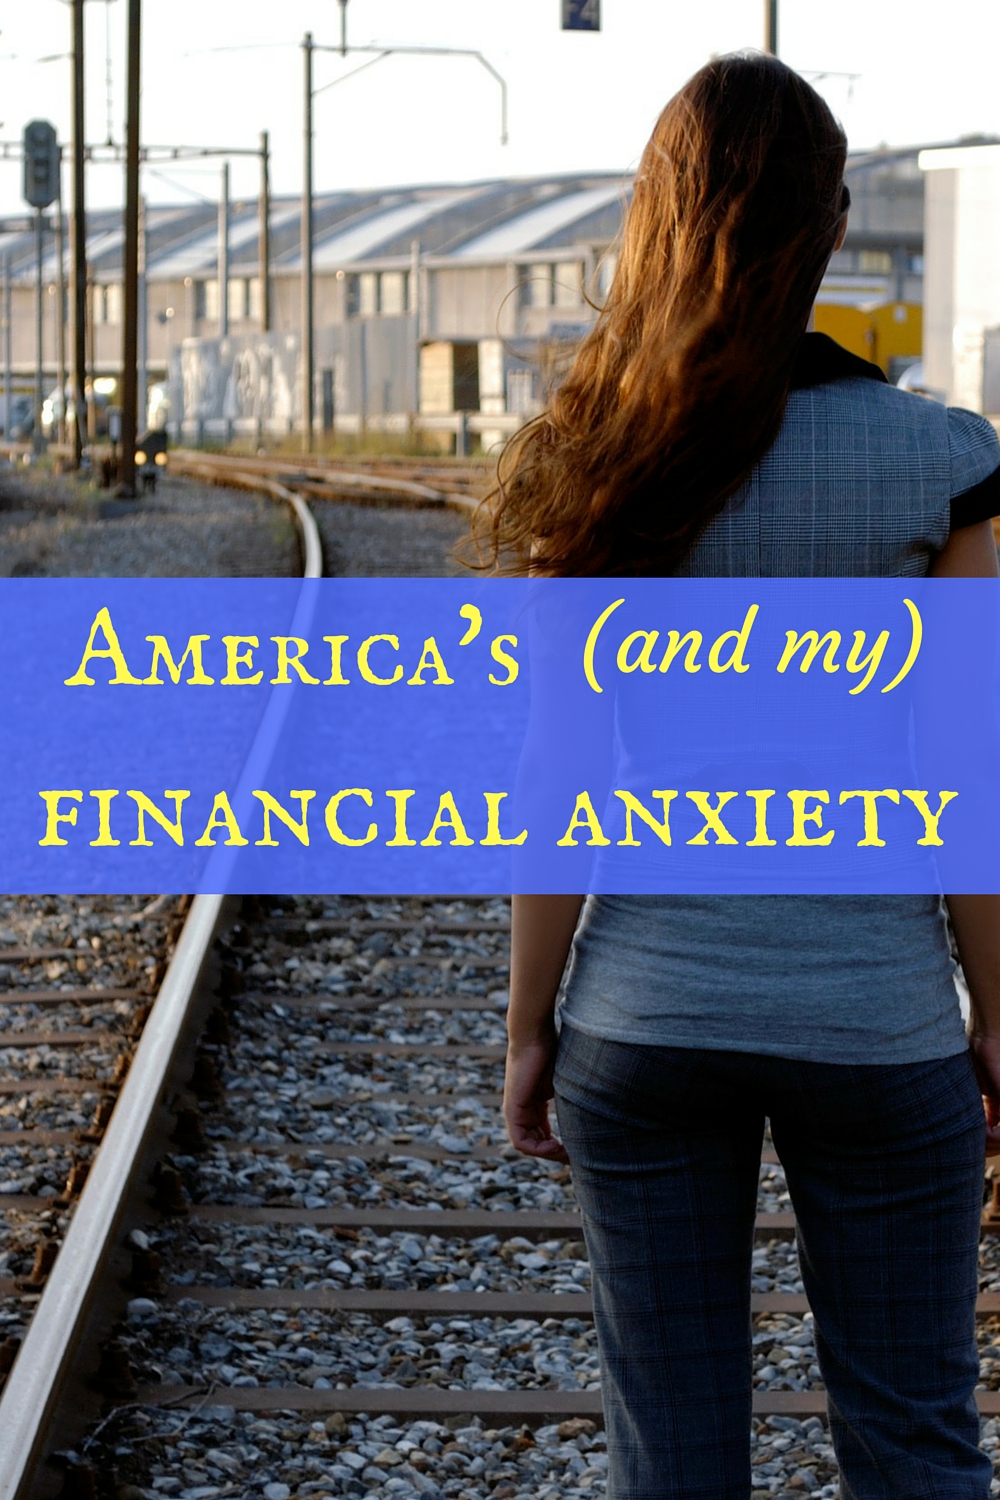 FInancial anxiety reigns supreme in this country!